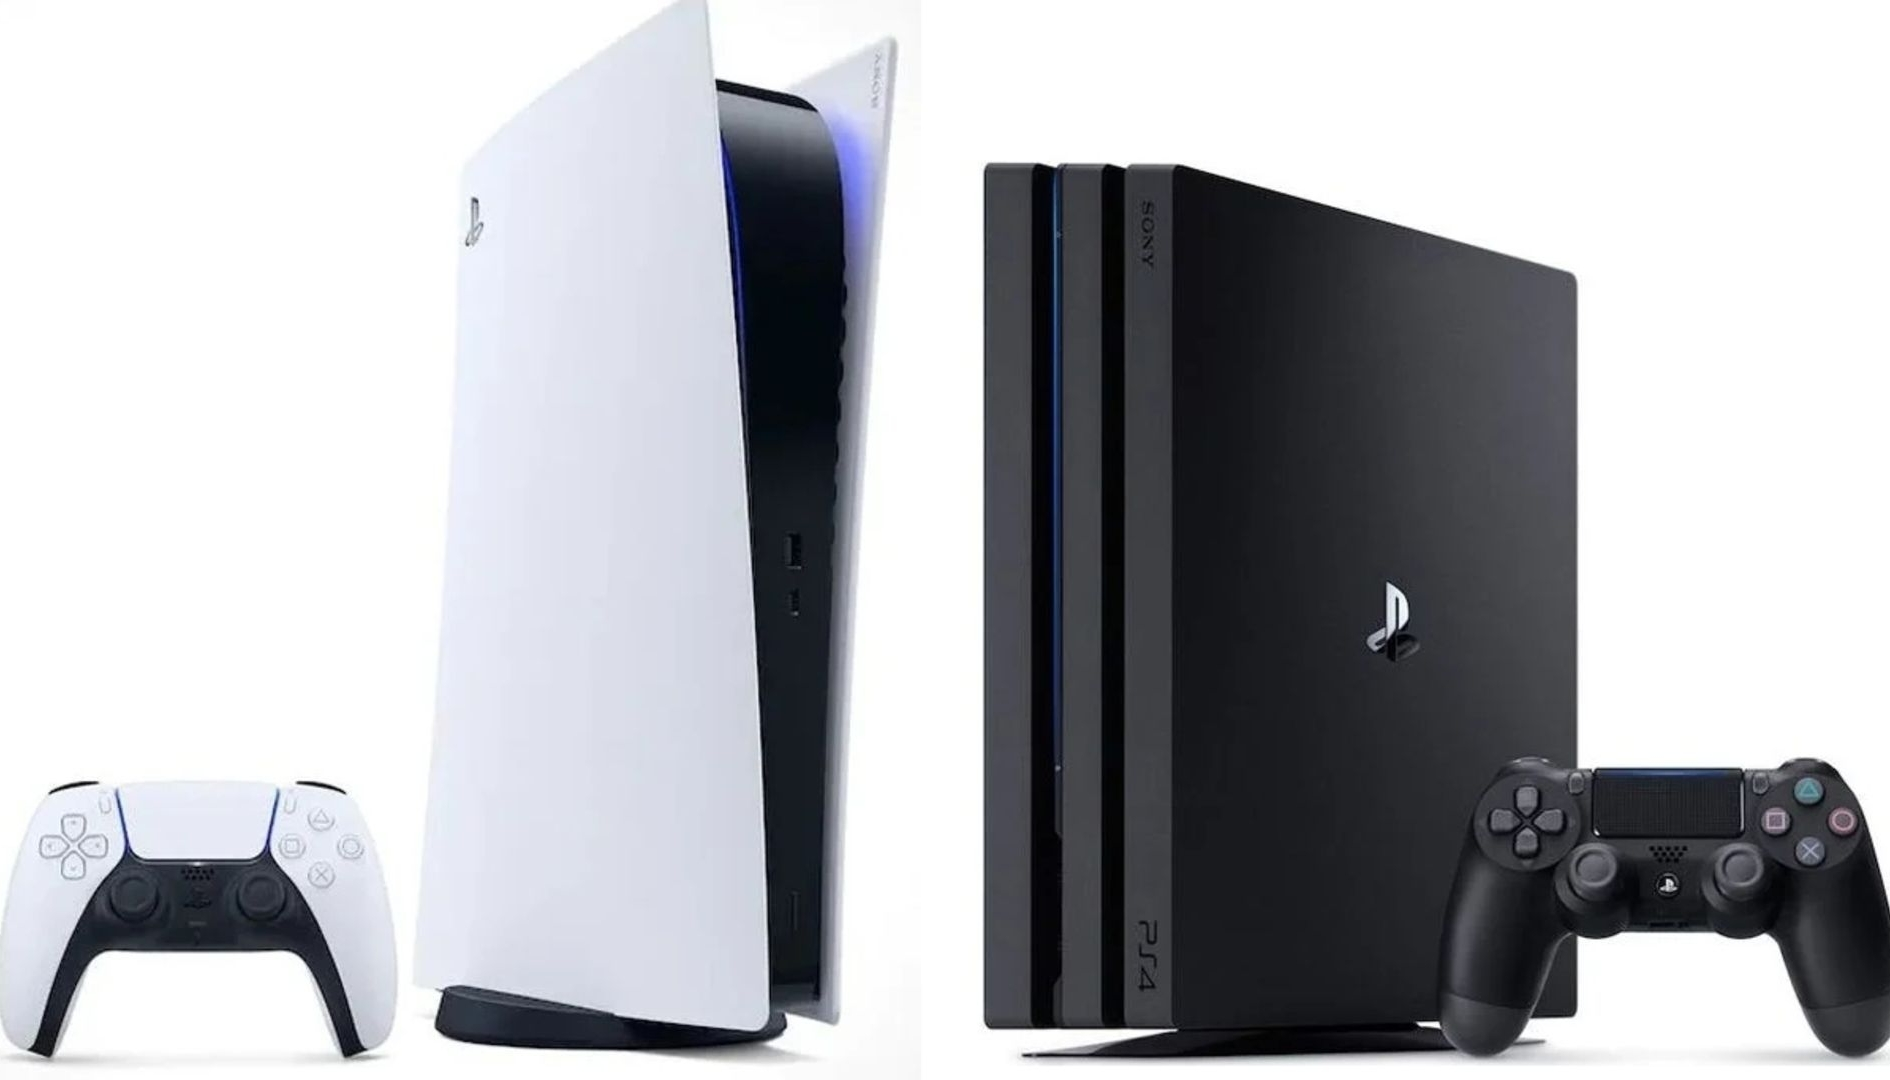 PS5, ora è ufficiale: retrocompatibilità hardware con PS4